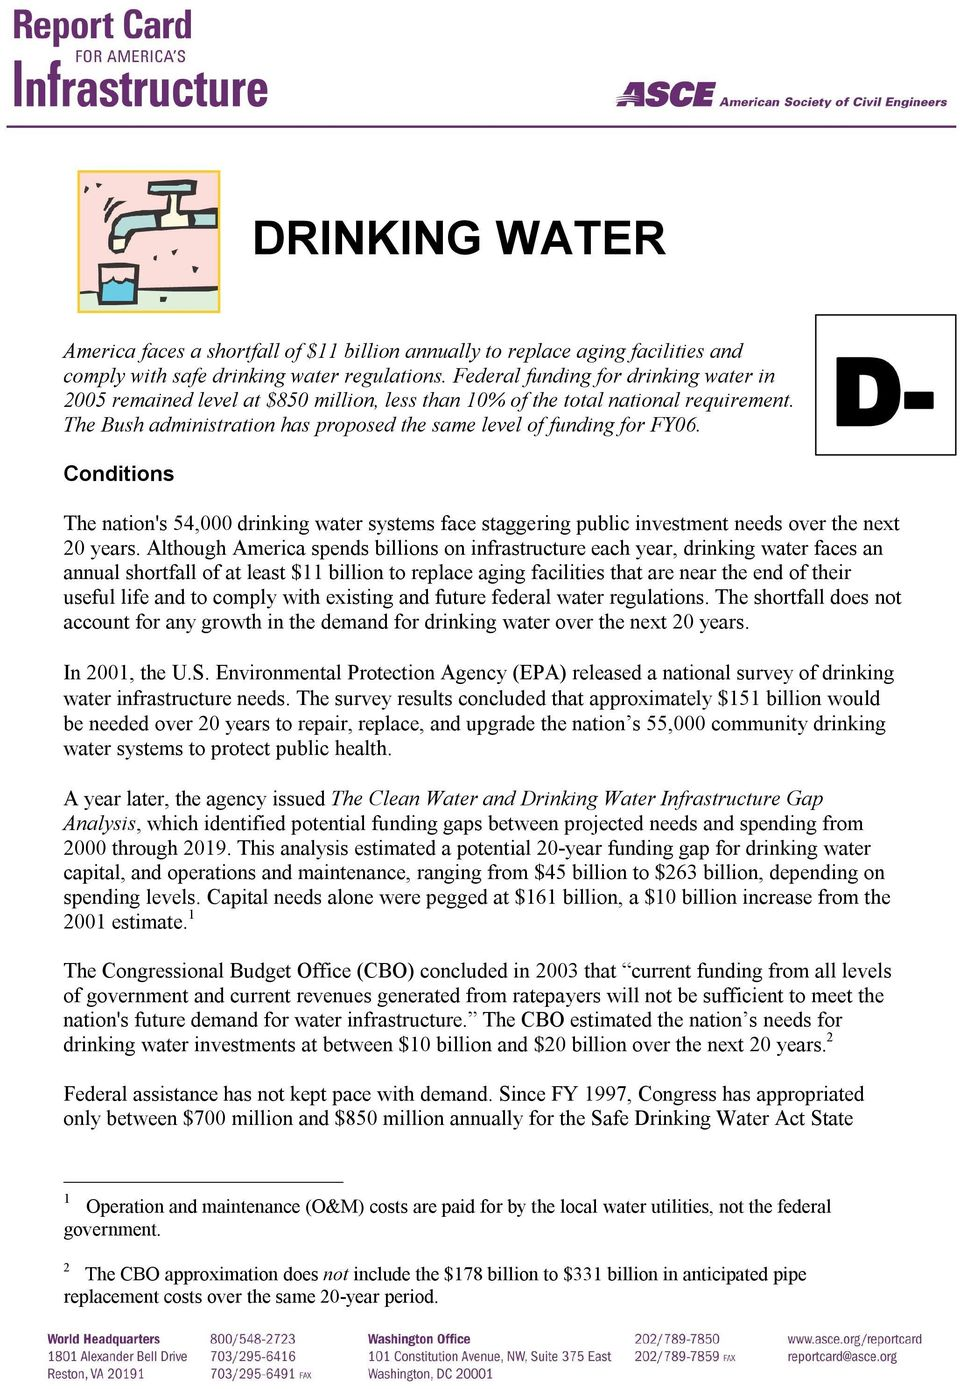 D Conditions The nation's 54,000 drinking water systems face staggering public investment needs over the next 20 years.